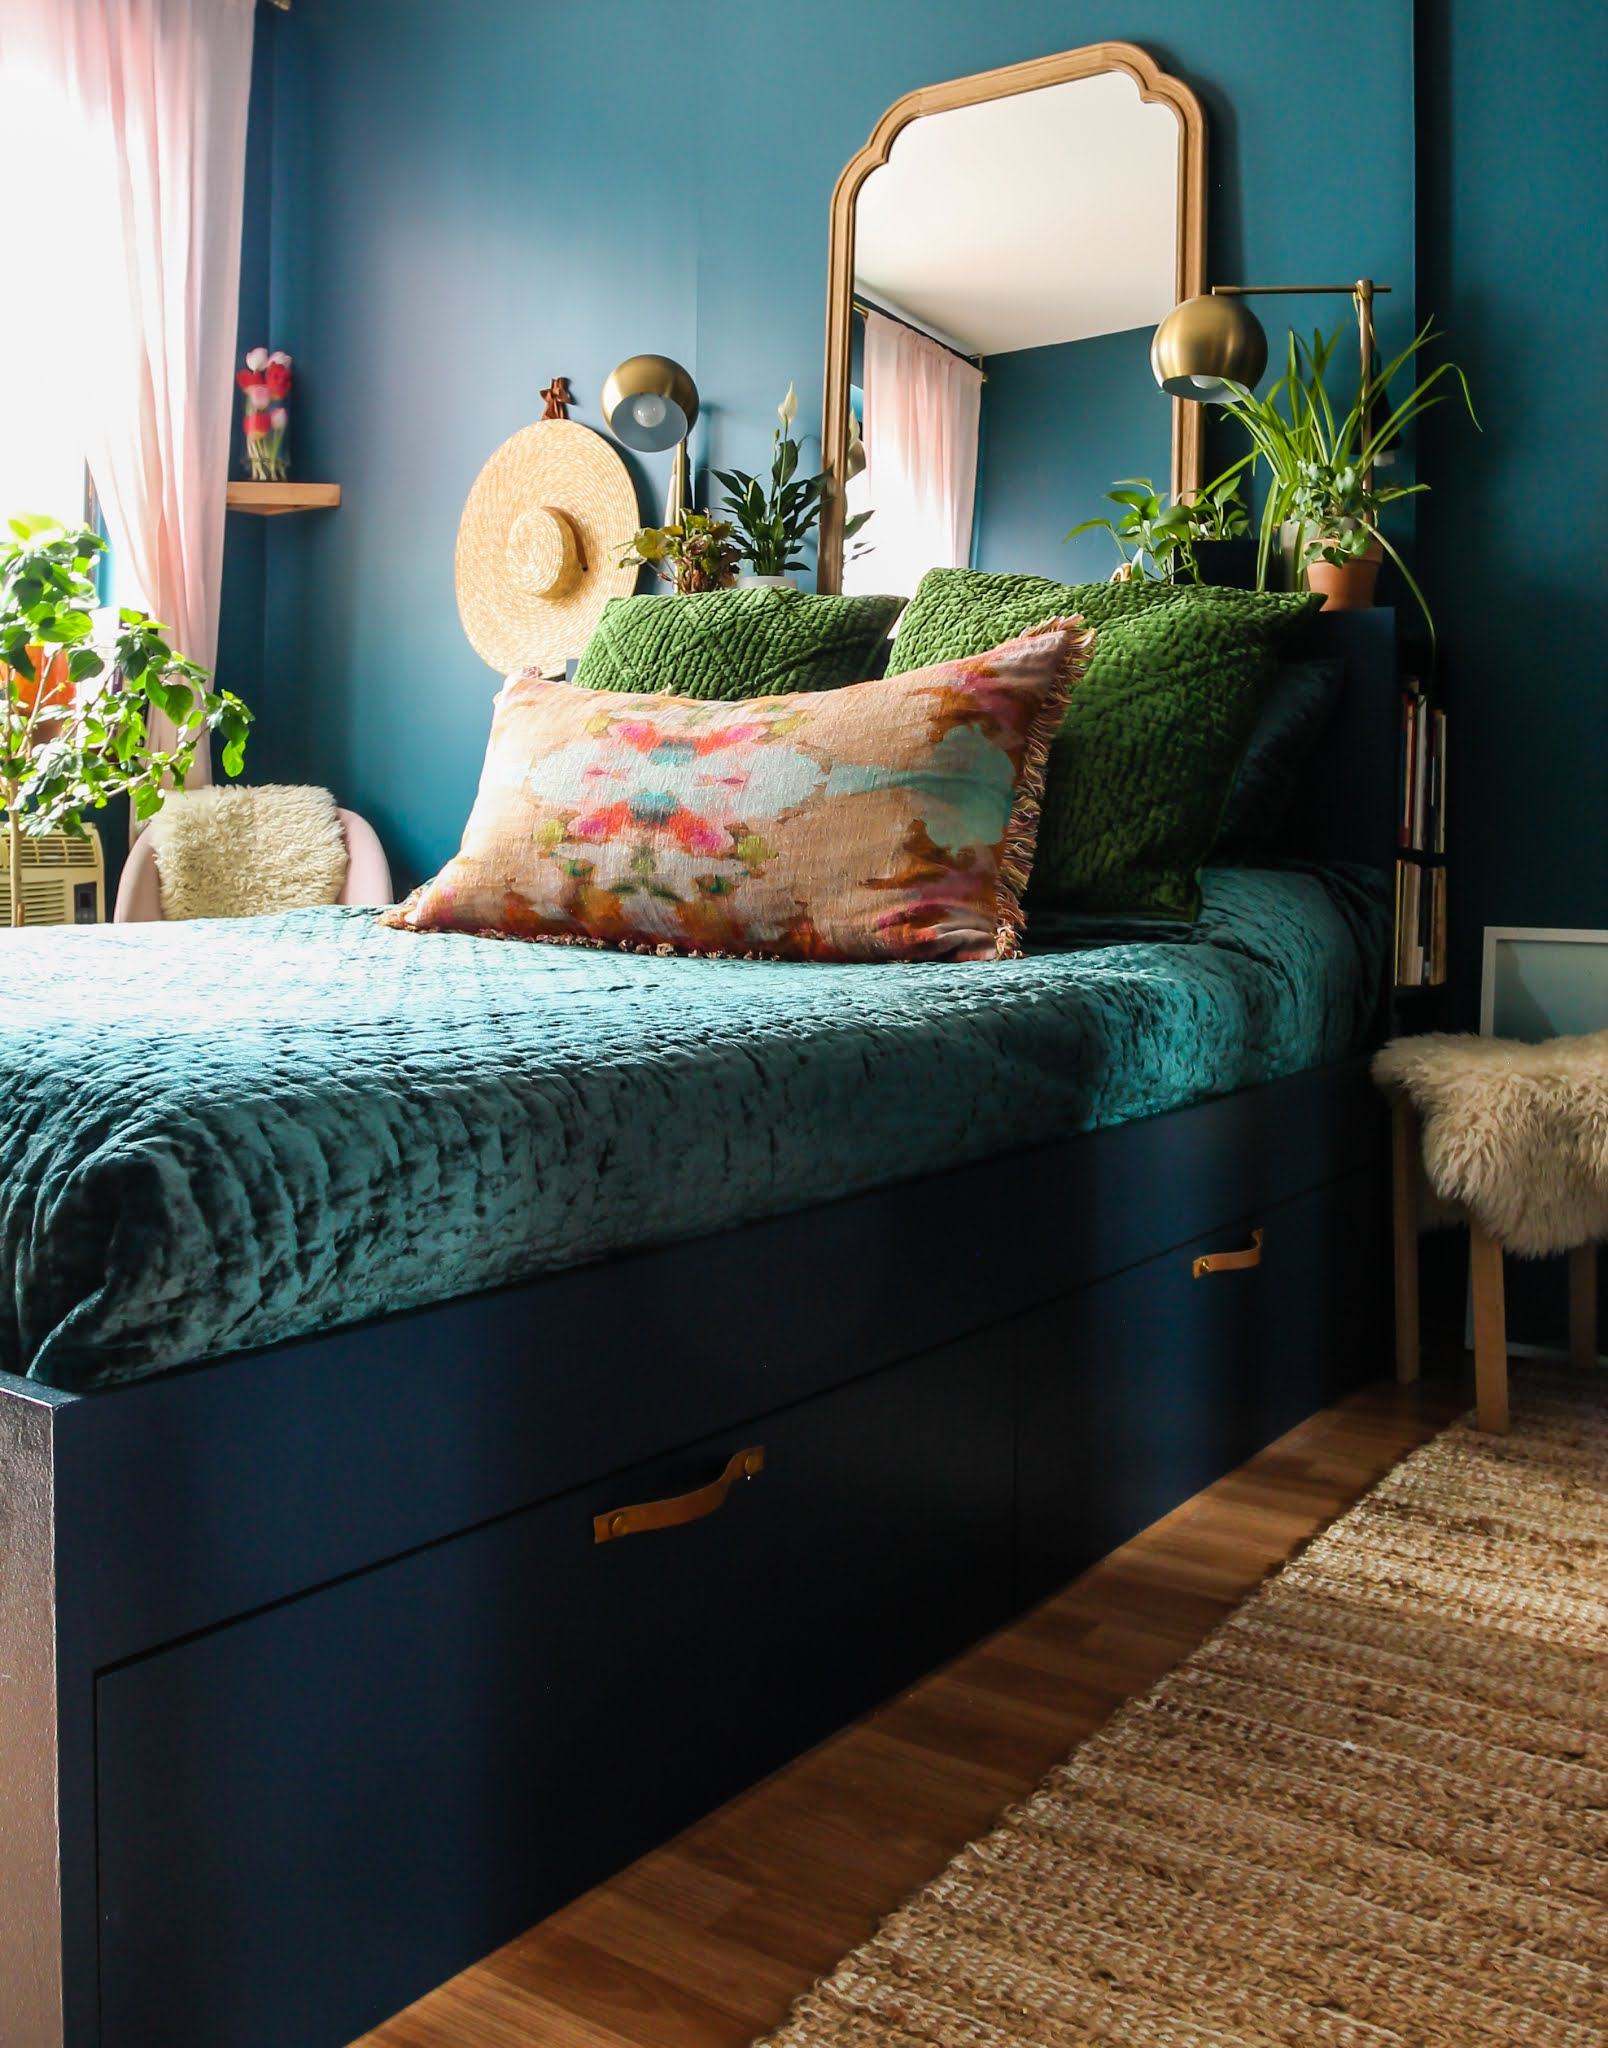 jeweltone bedroom // ikea hack // Brimnes bed handle upgrade // blue and green bedroom // blue and green decor // jeweltone decor // easy ikea hacks // colorful bedrooms // colorful boho bedrooms // teal bedroom // navy bedroom decor // Clare goodnight moon // clare deep dive // bedroom with plants // ikea hacks // Annie selke bedding // Annie selke kenly